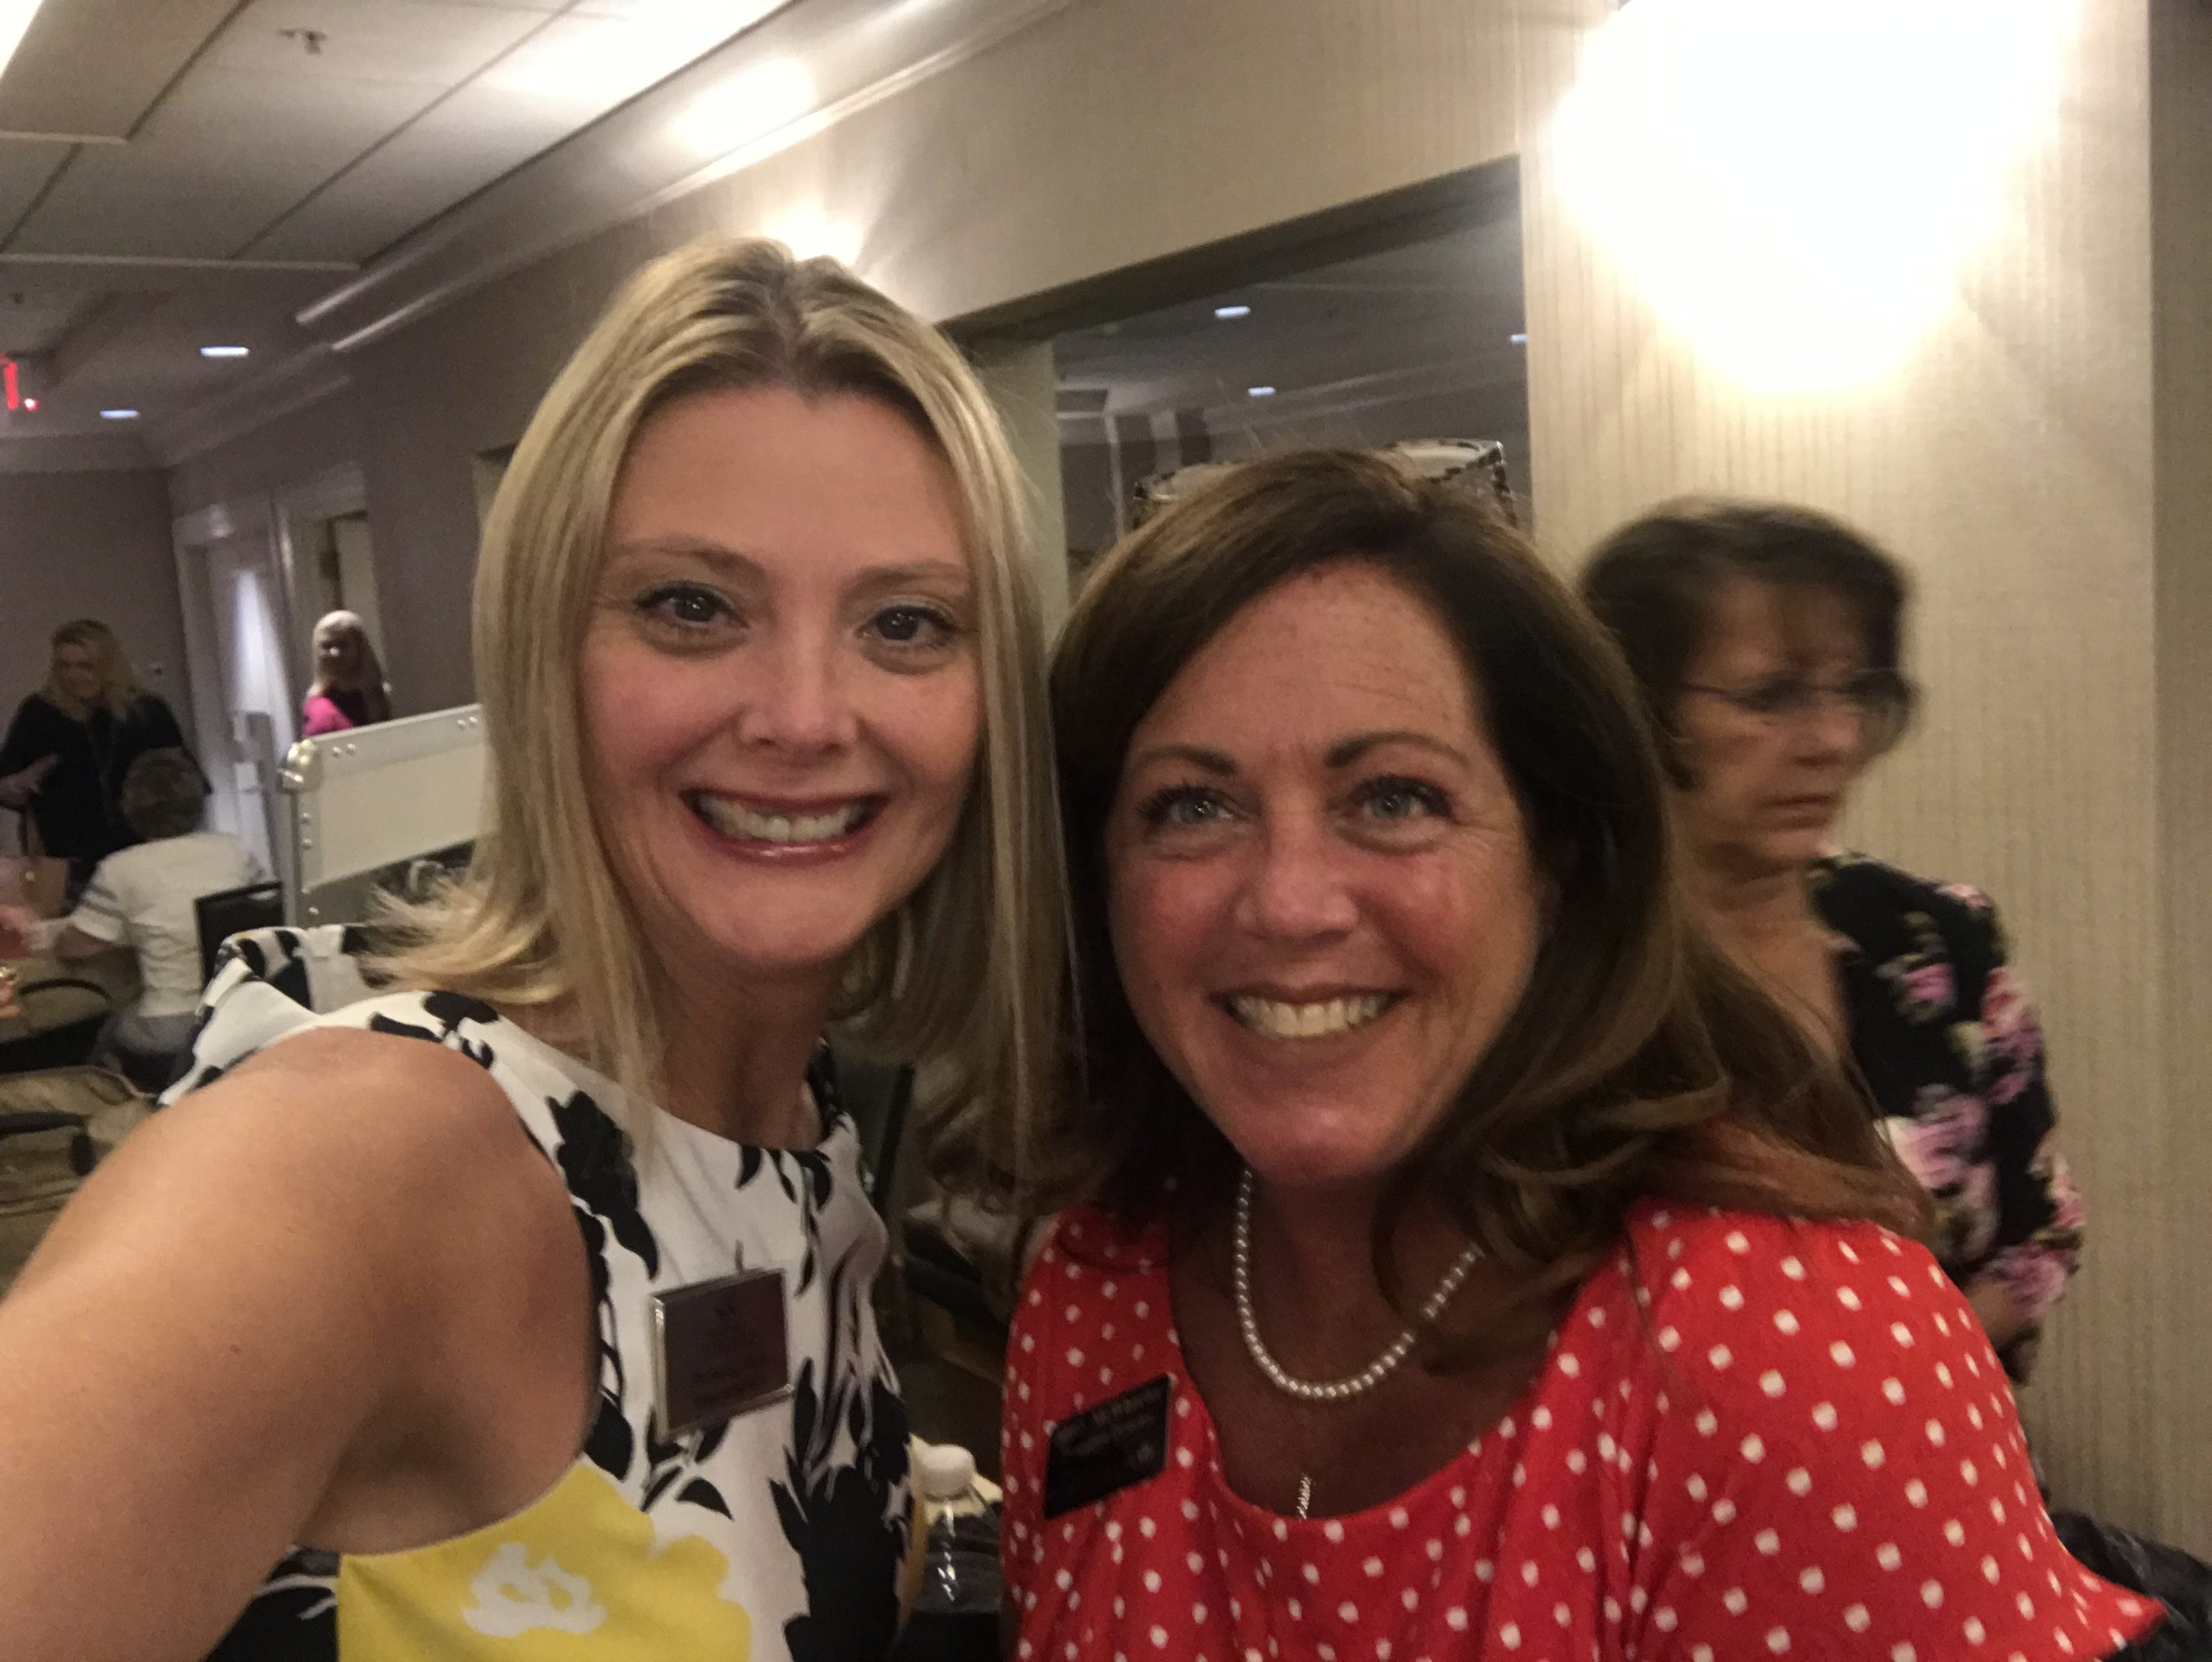 Great time seeing fellow members of the Fairlawn Area Chamber of Commerce.  Congrats Heather with Glitter Girl Media for becoming a new member!